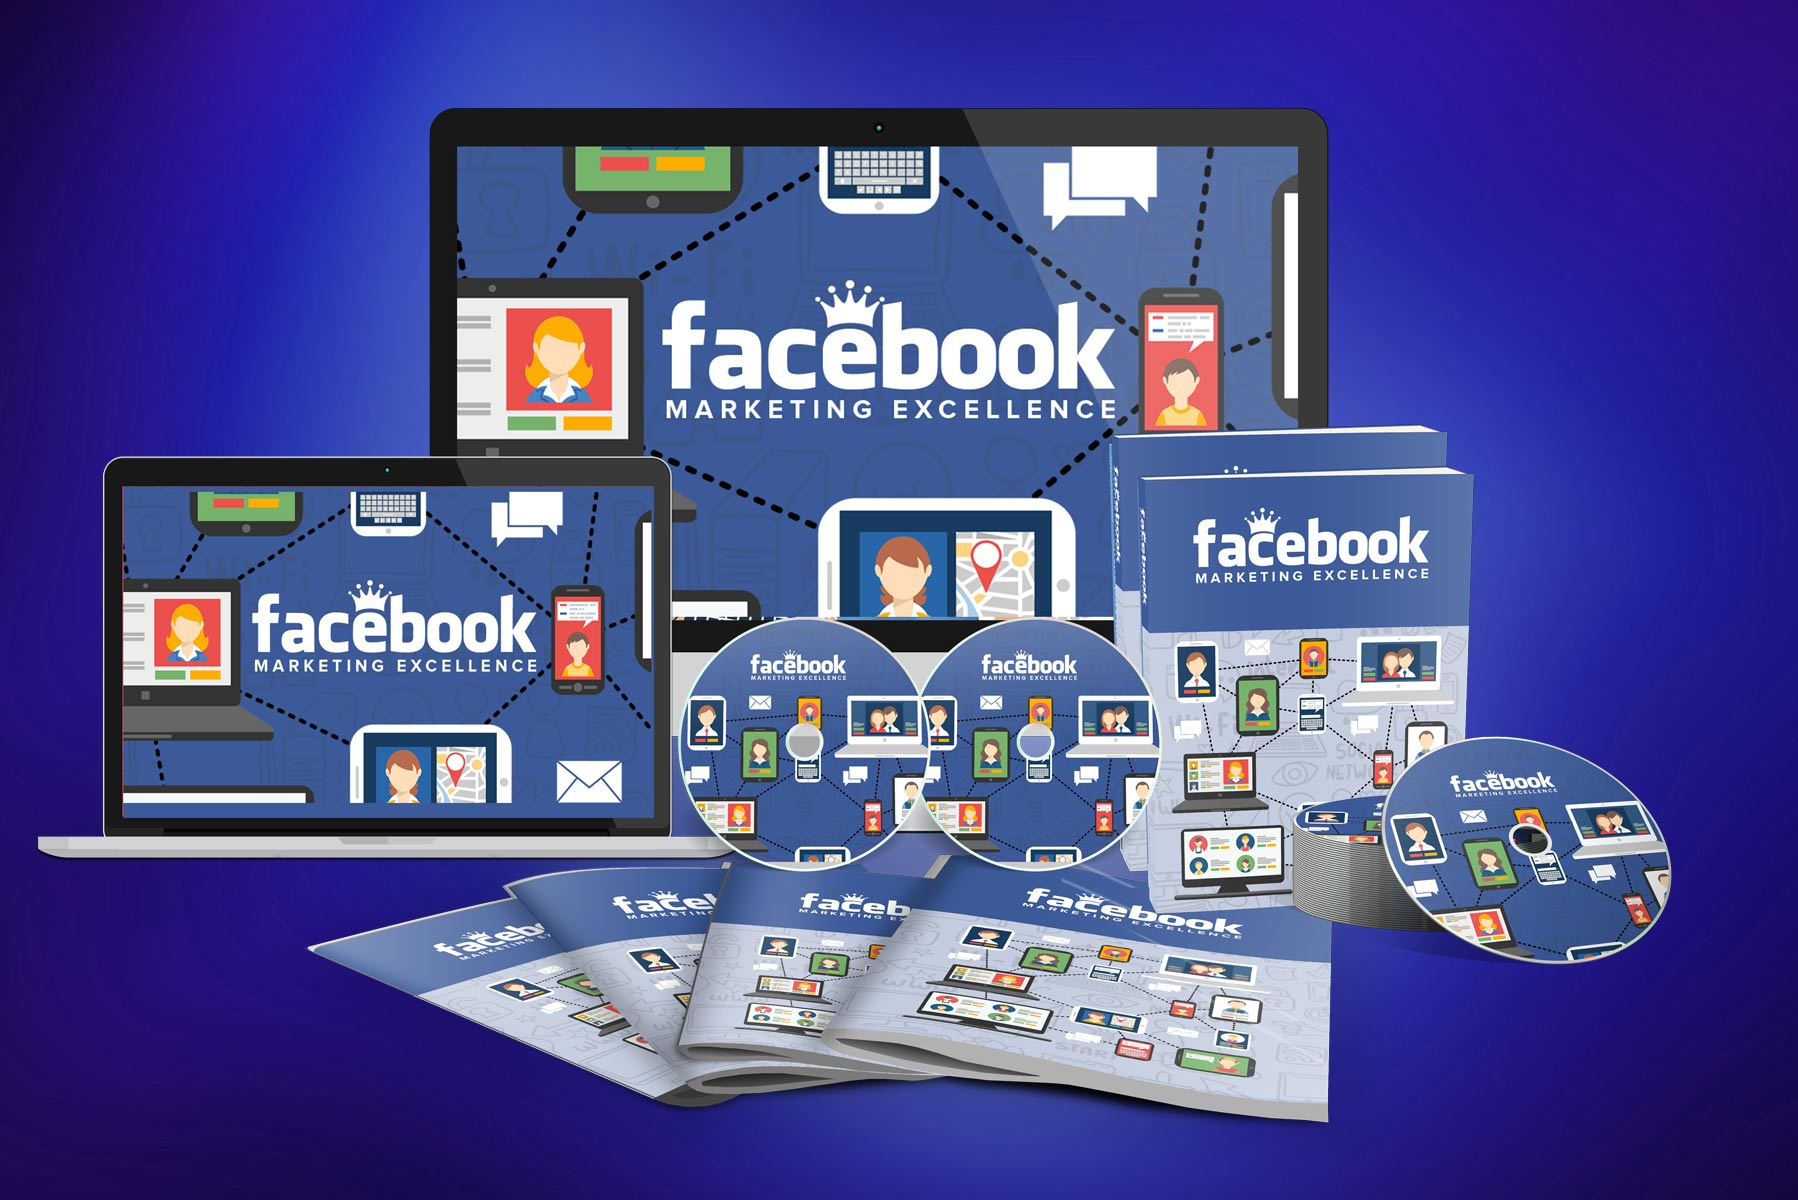 facebook marketing in chennai, web design in chennai, web design company in chennai